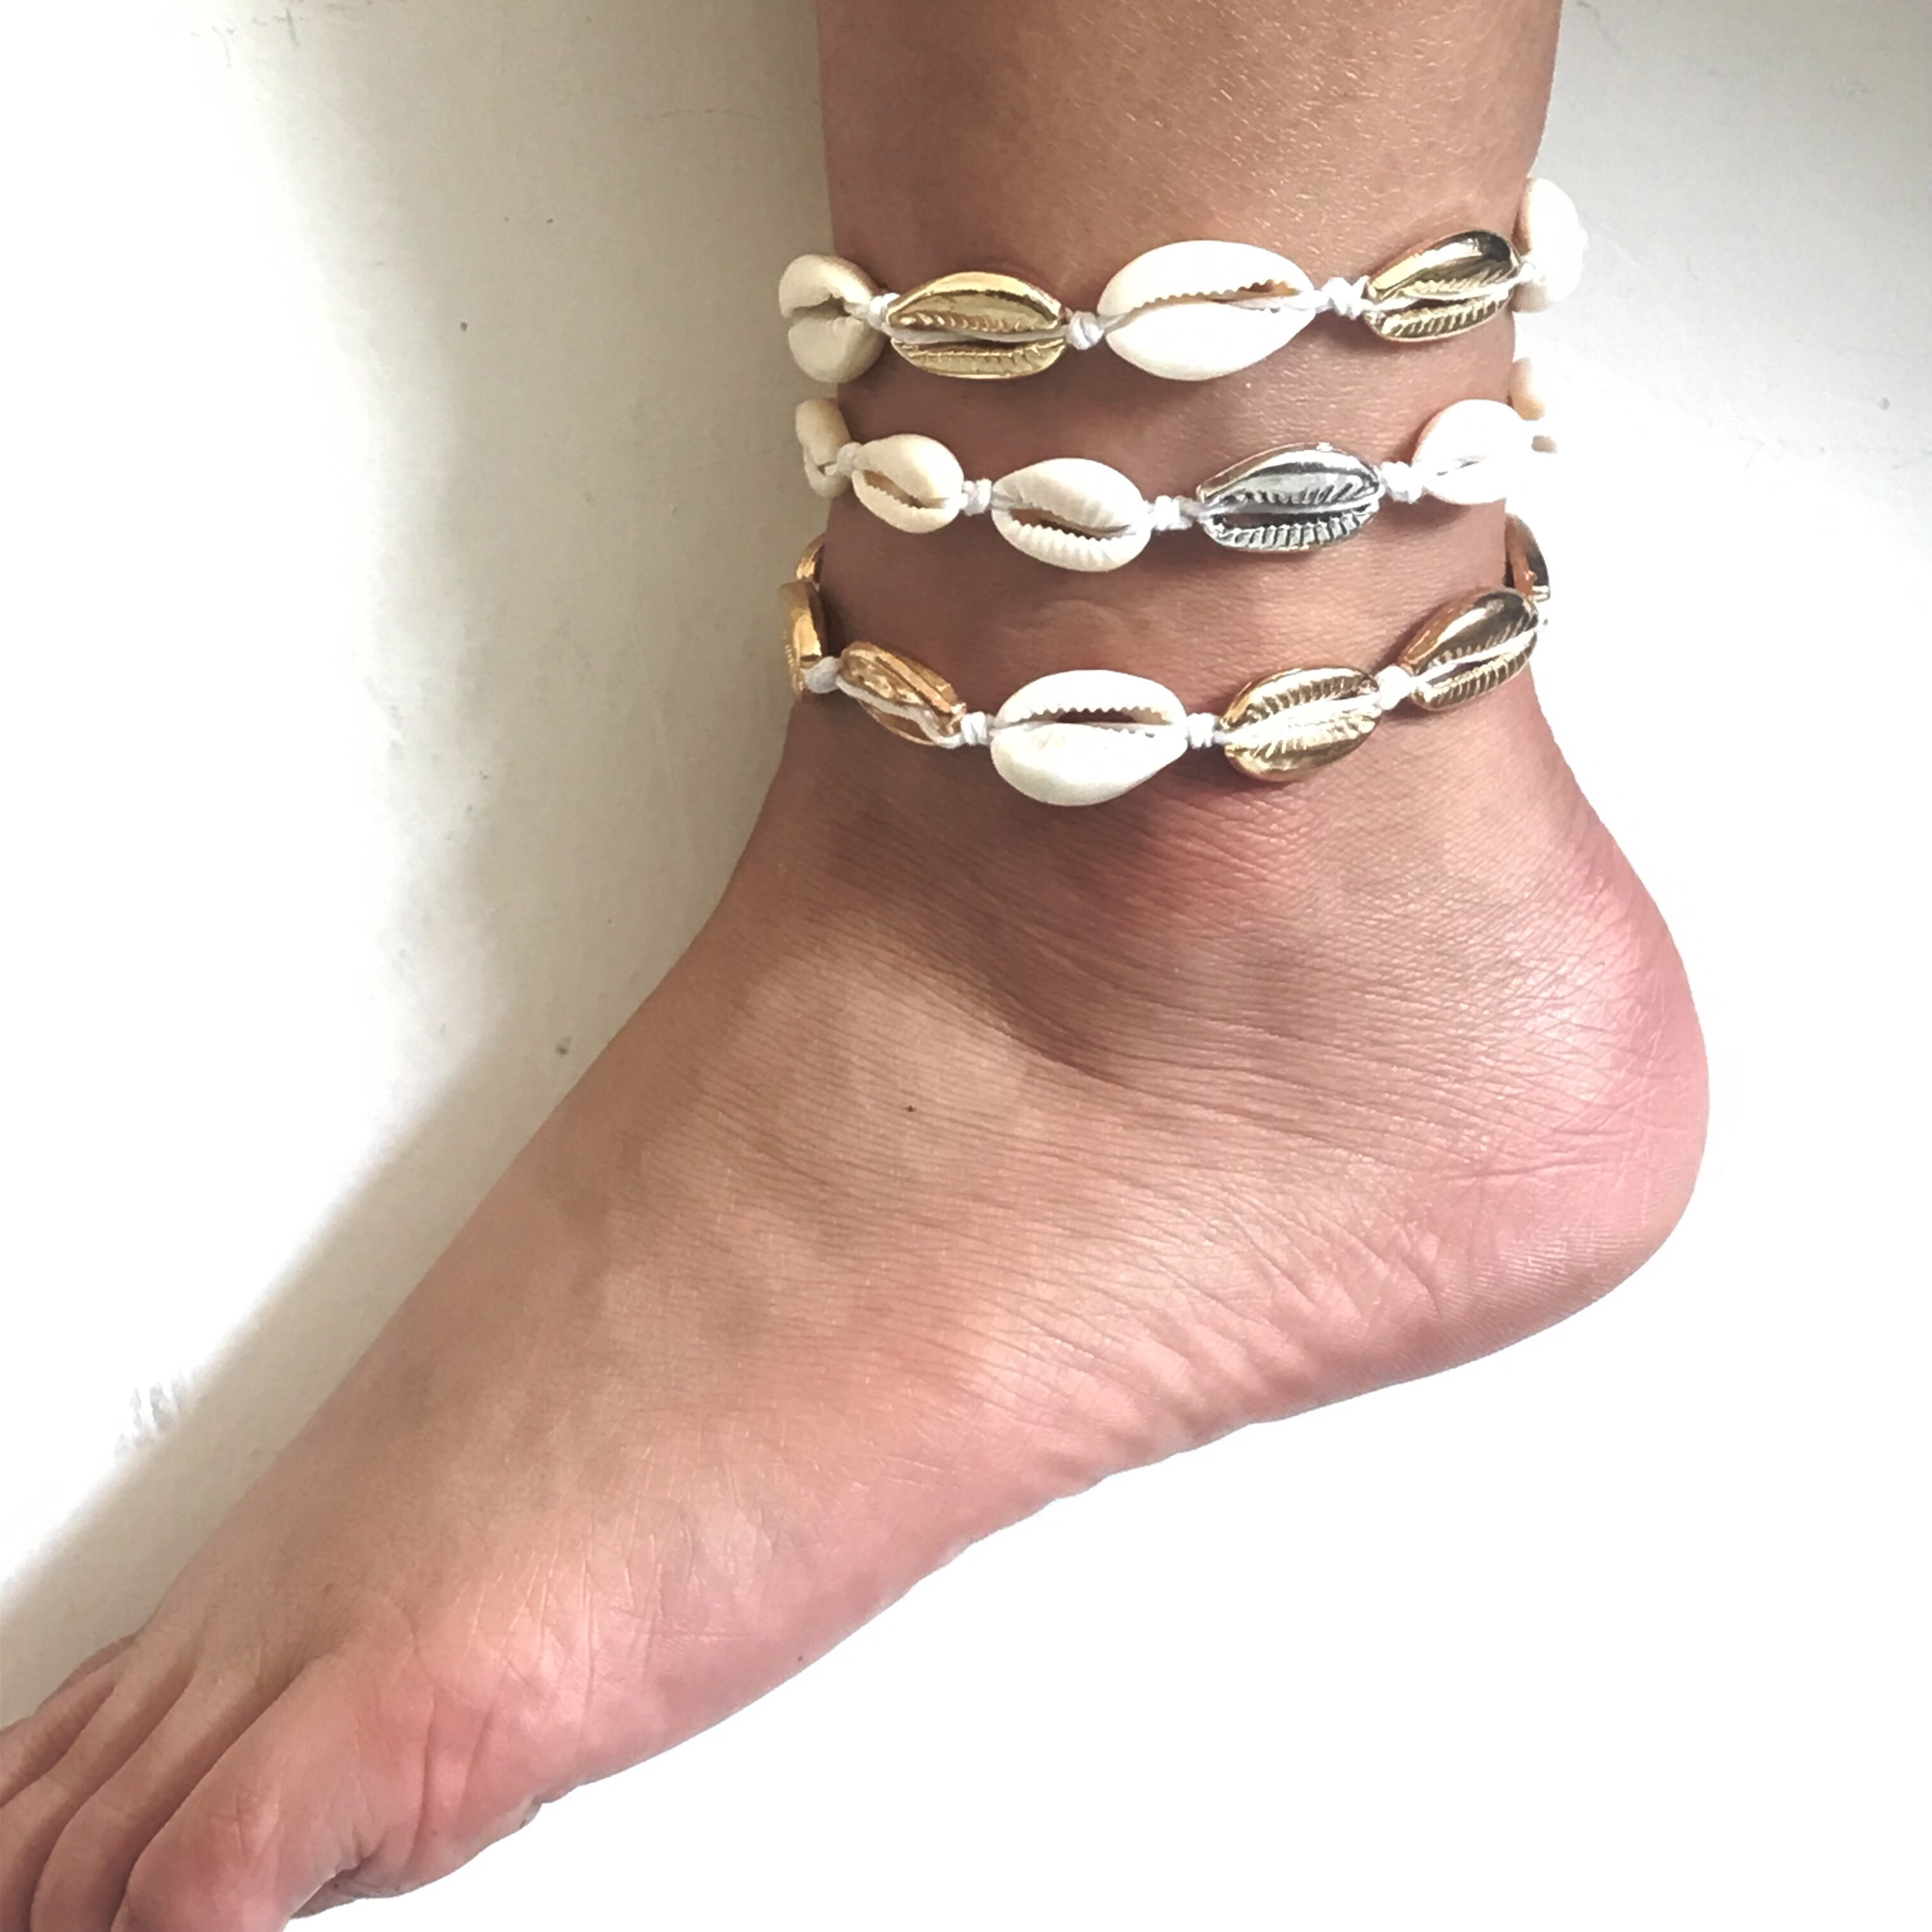 Anklets for Women shell Foot Jewelry Summer Beach Barefoot Bracelet ankle on leg Ankle strap Bohemian Accessories shell anklets 5